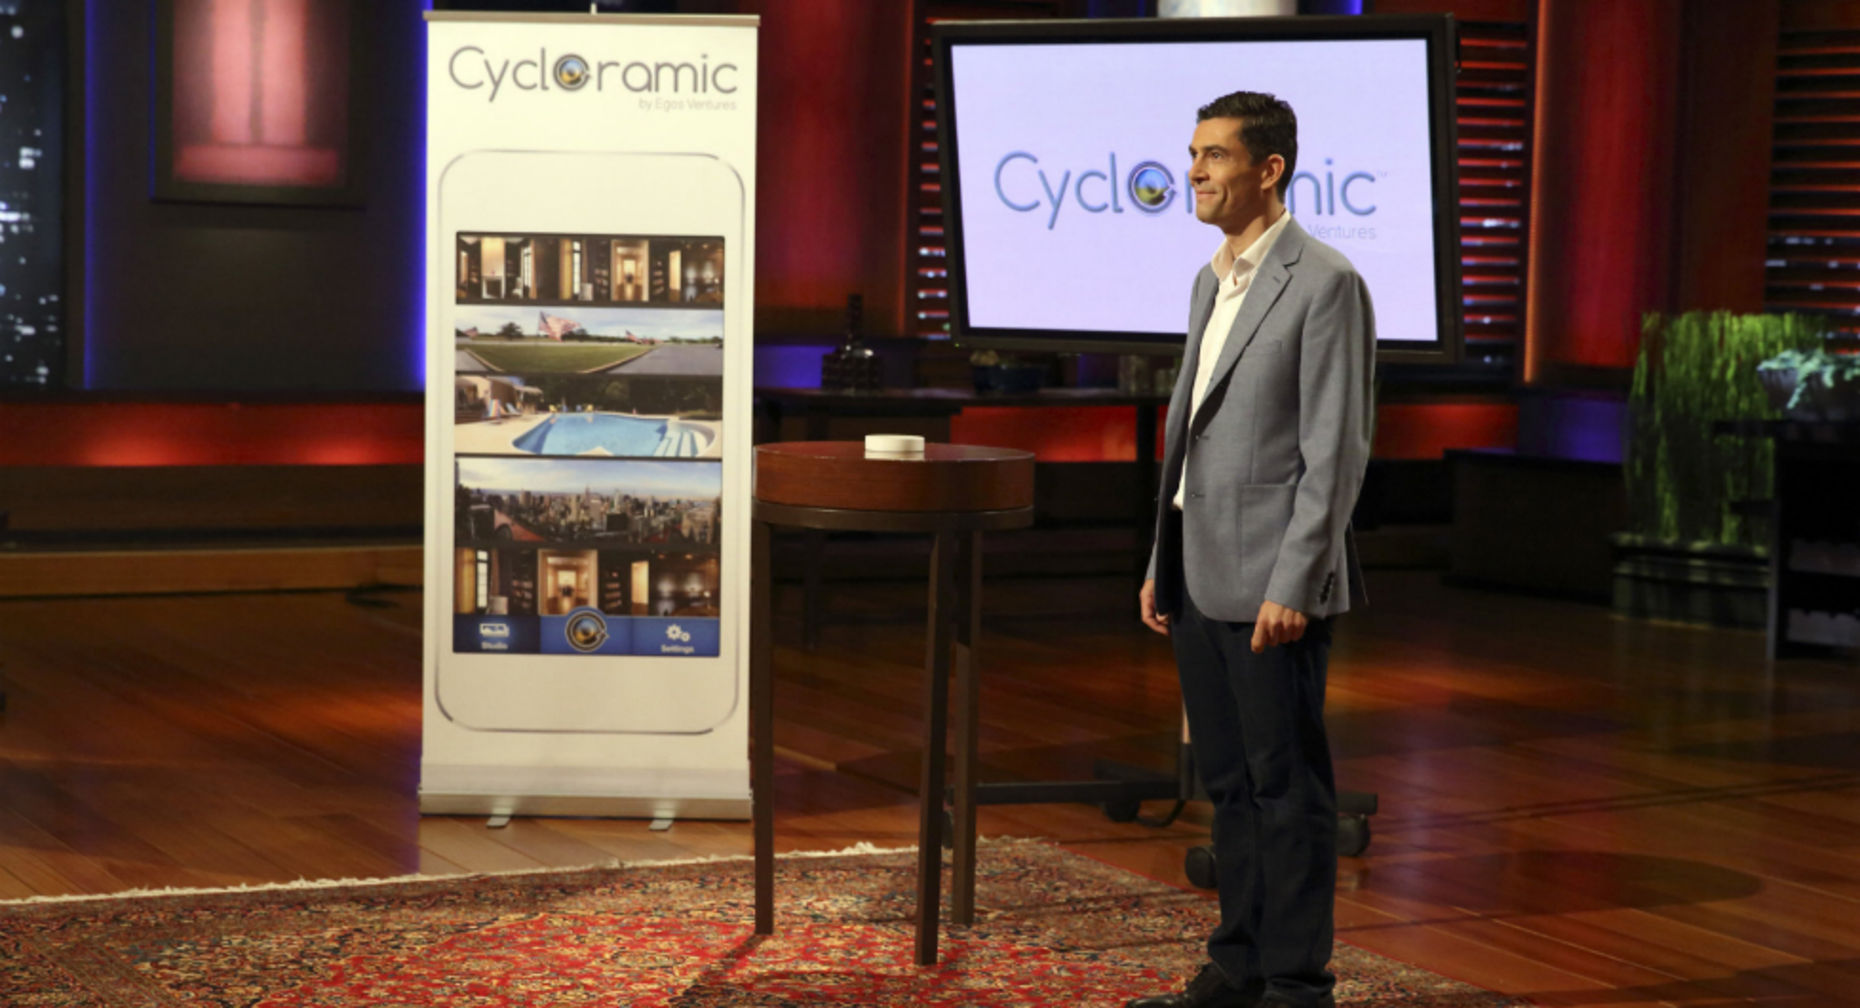 Bruno François presenting his app Cycloramic. Credit: Ergos Ventures